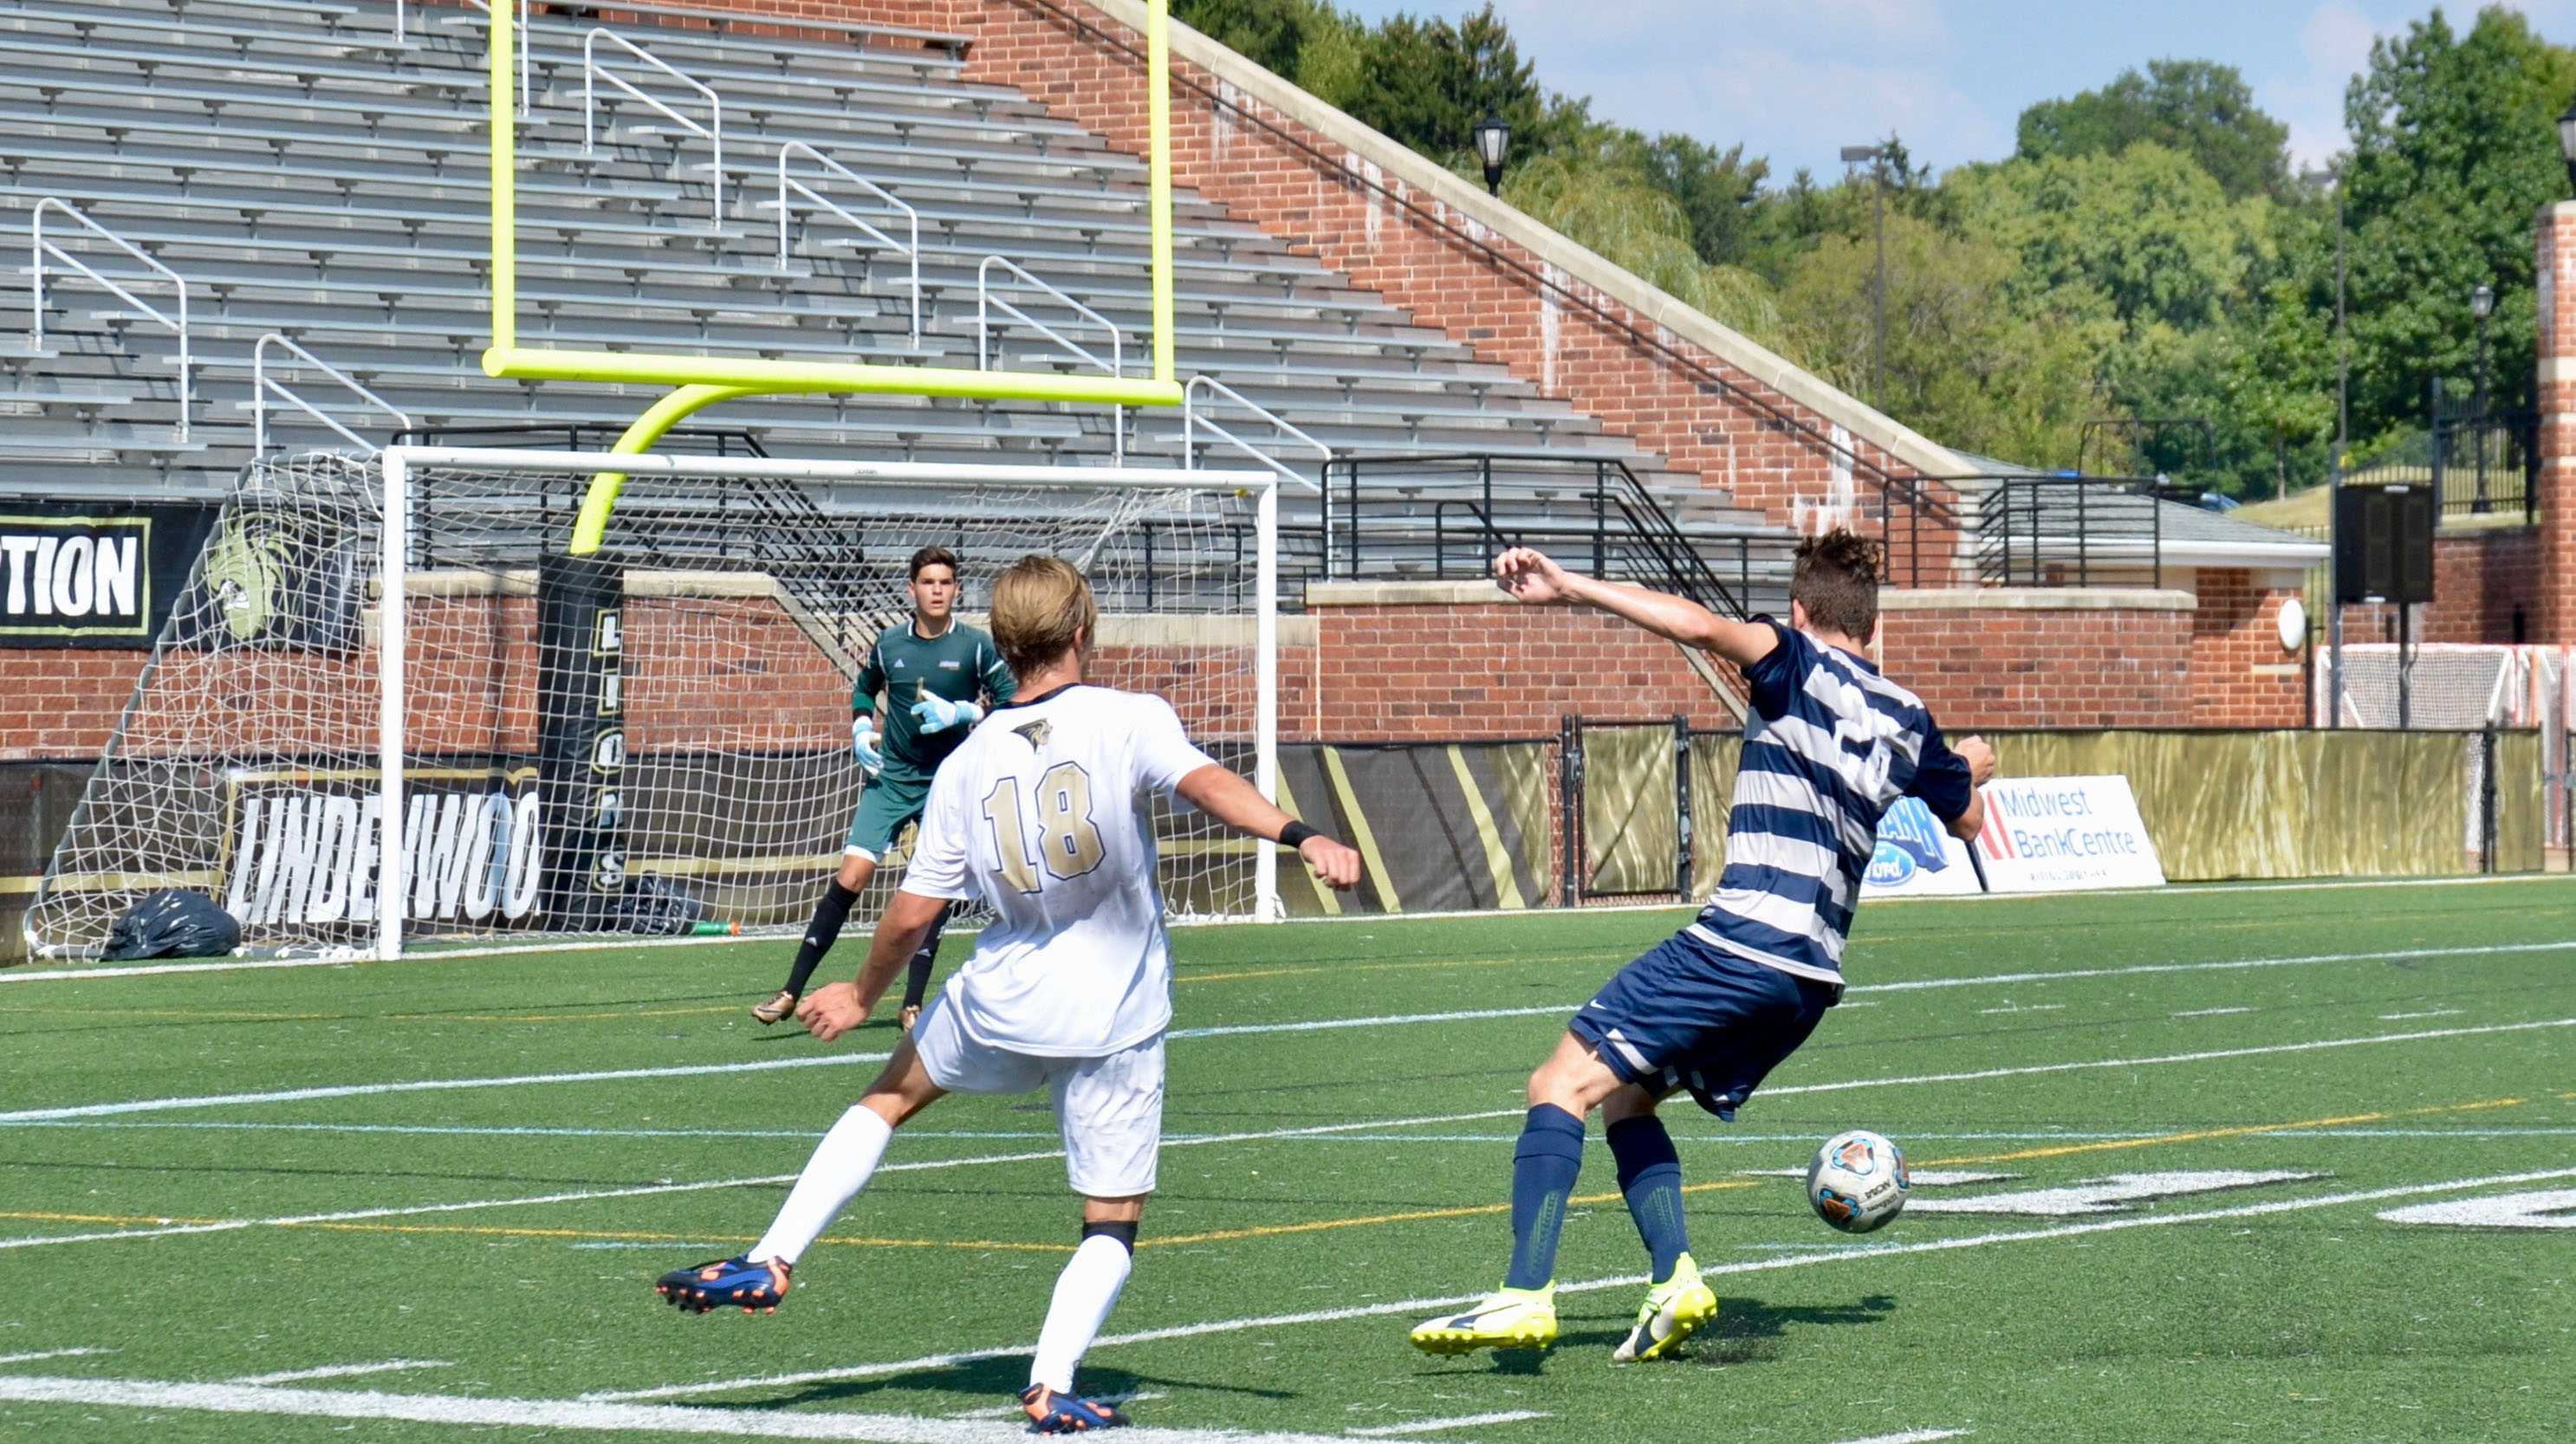 In a file photo from 2017, Jose de Val Lopez, number 18, defends the goal against Upper Iowa University. Photo by Rolando Dupuy.